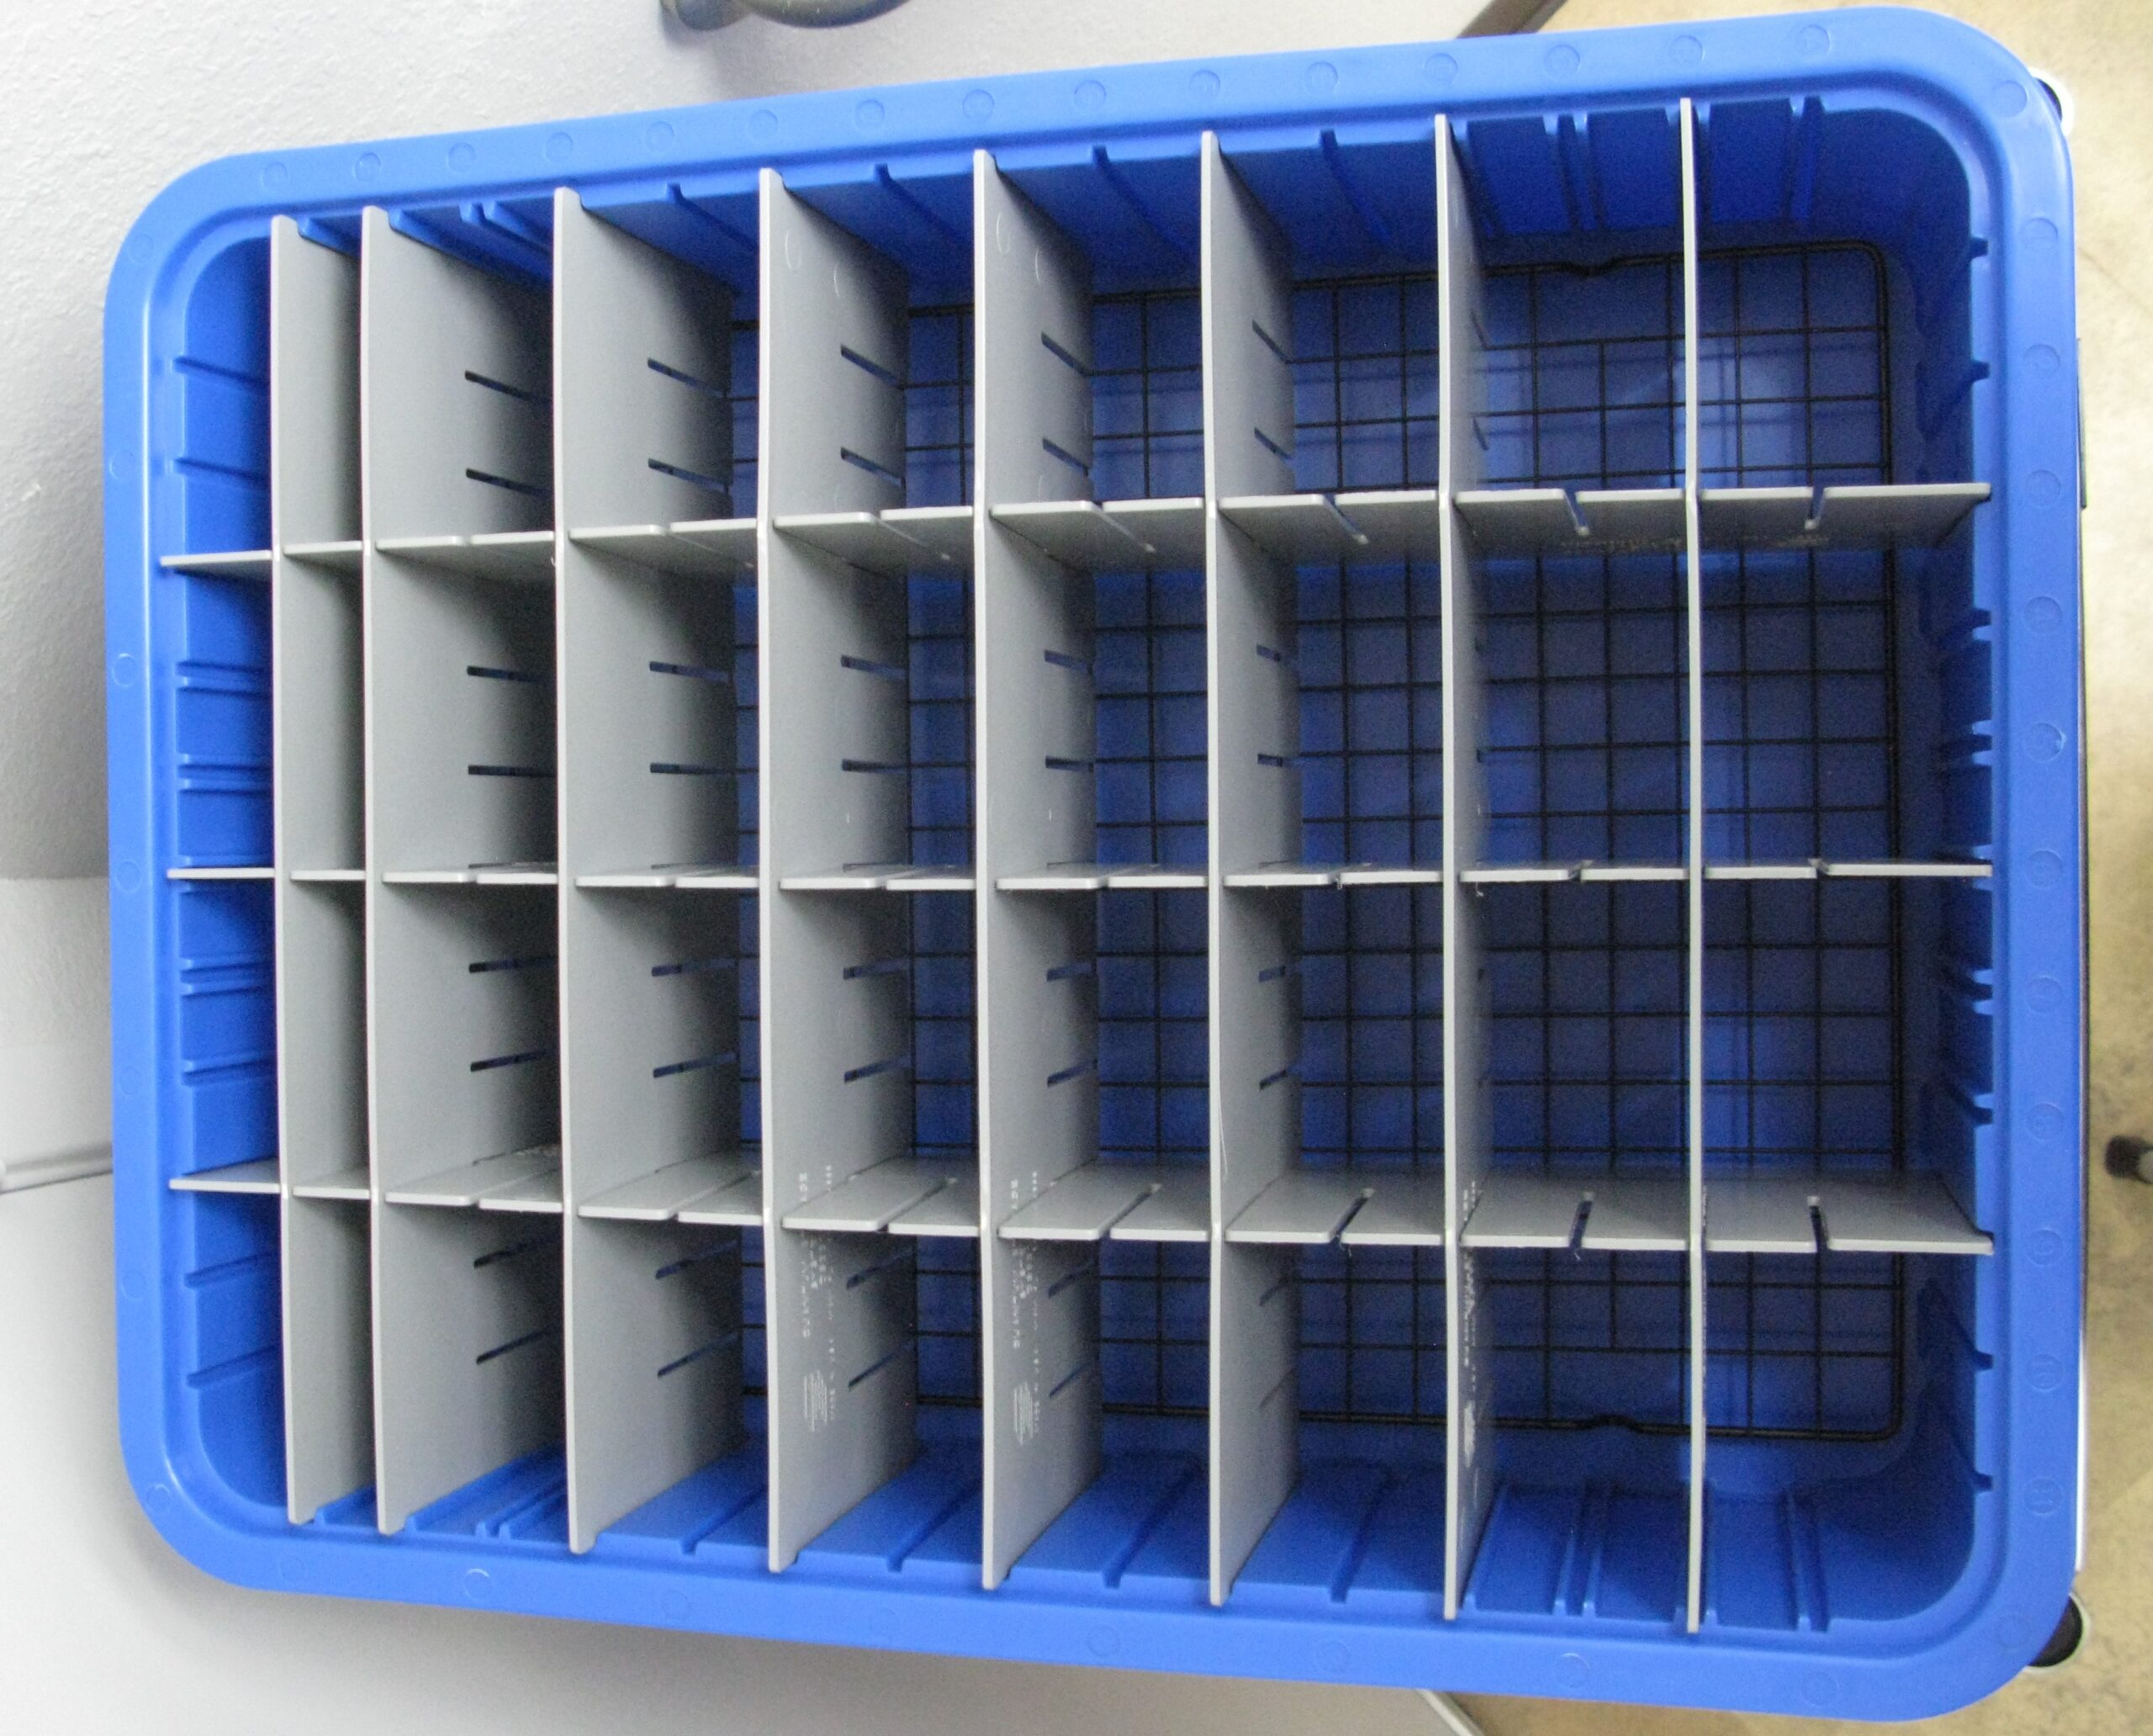 Transmitter drawer w/dividers bottom wire rack will hold minimum 32 Transmitters depending on size.